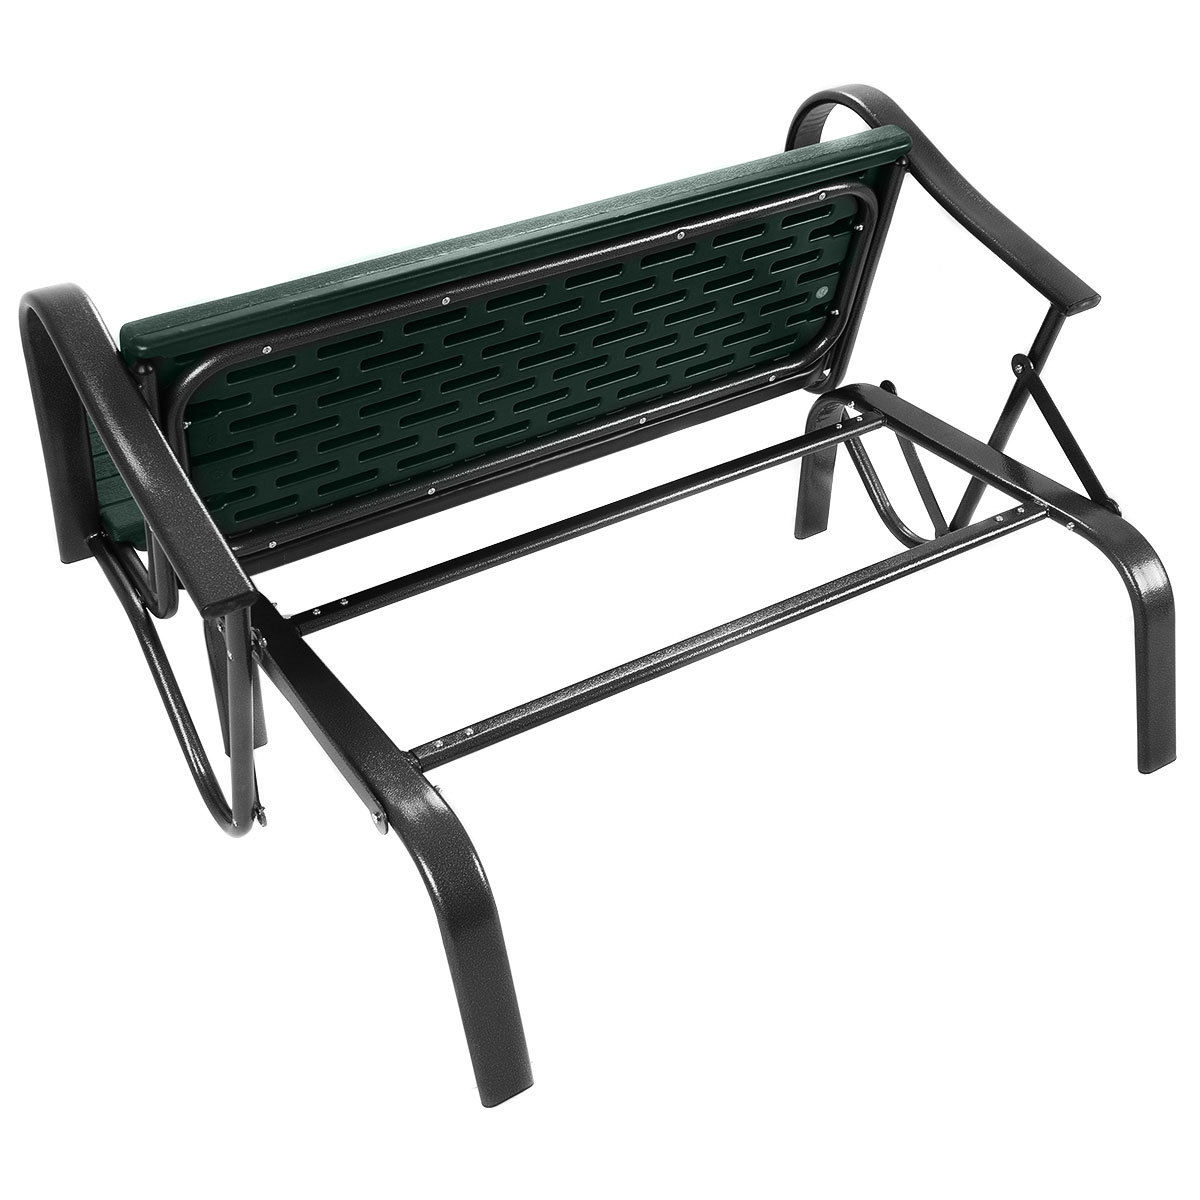 Outdoor Patio Swing Porch Rocker Glider Bench Loveseat In Outdoor Patio Swing Porch Rocker Glider Benches Loveseat Garden Seat Steel (View 9 of 25)